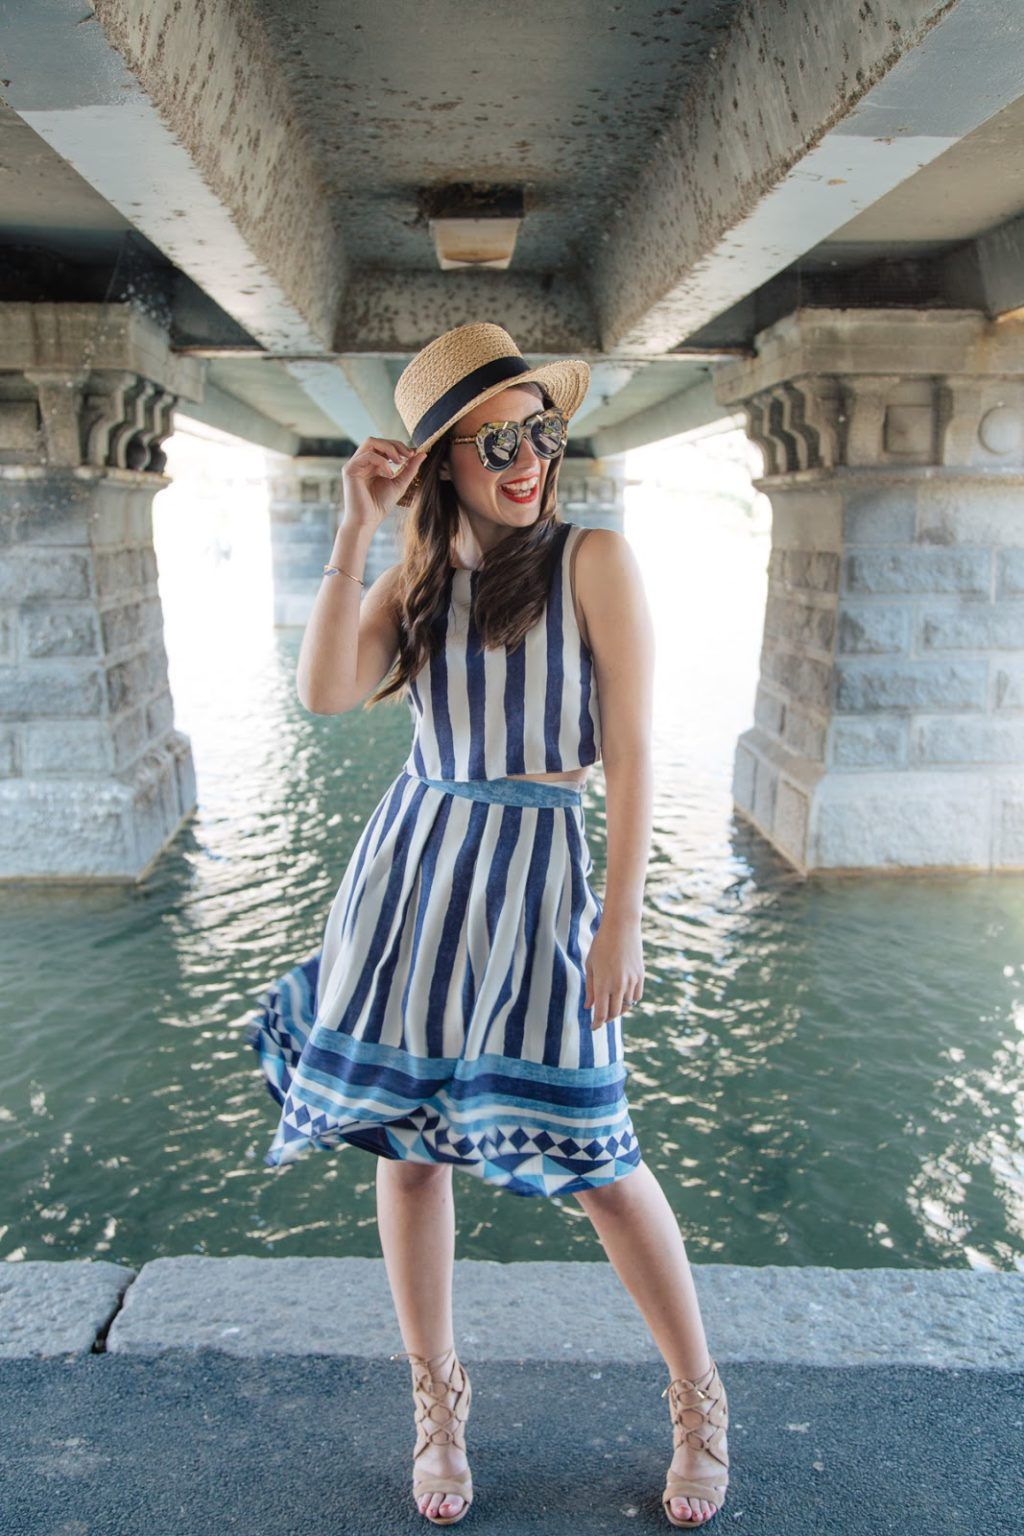 Wearing a spring fresh look with vintage flair for a sunny day in Boston's Public Gardens